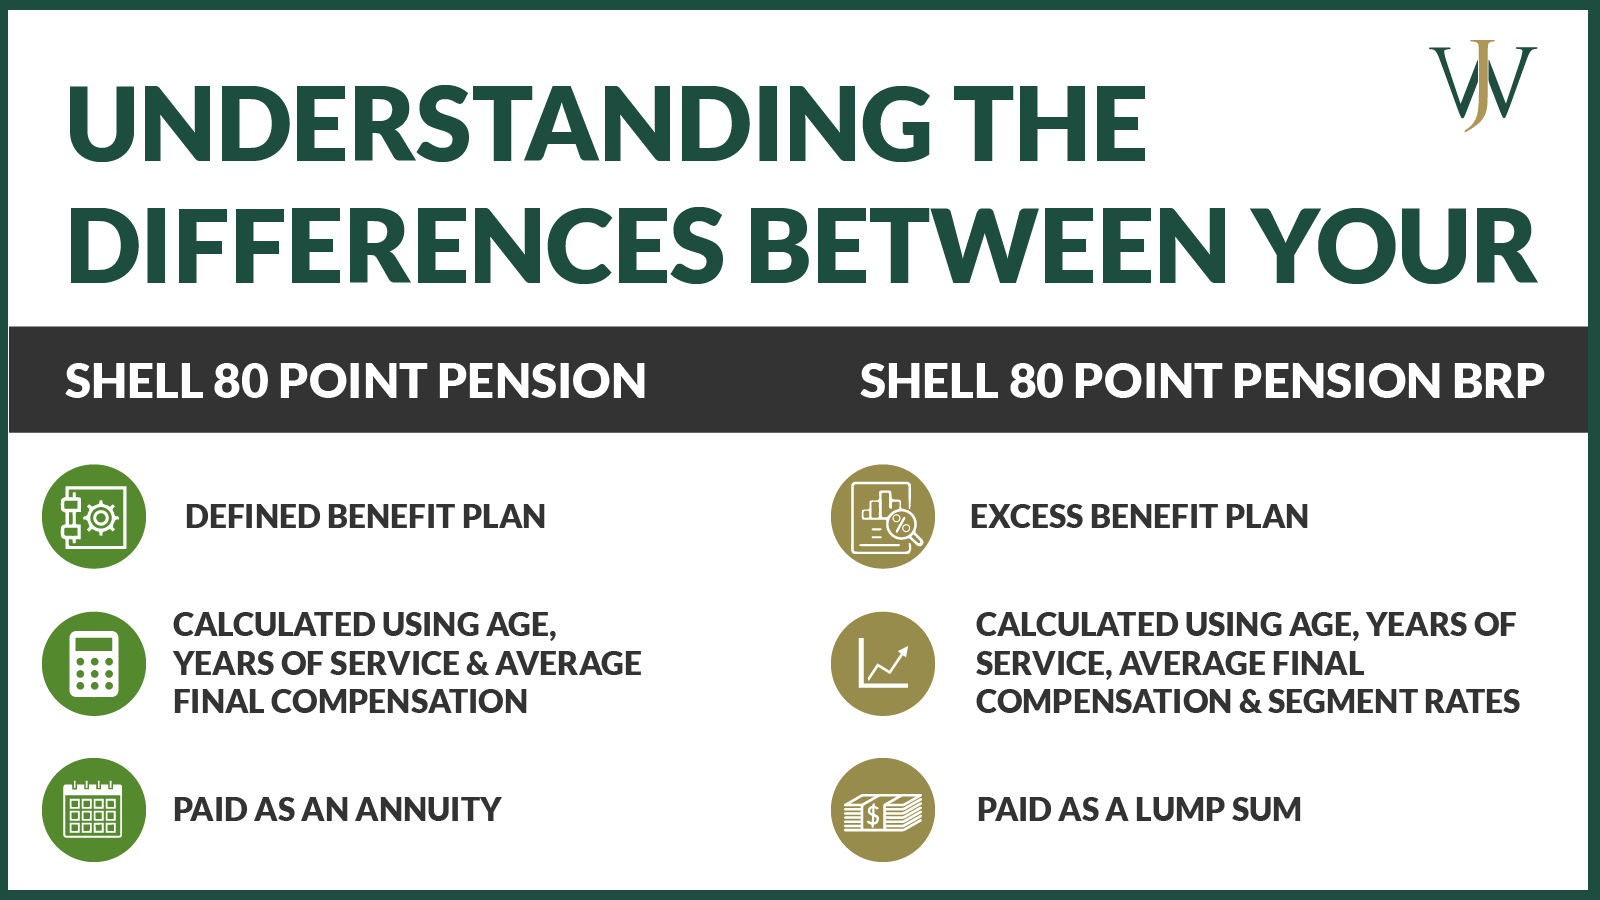 difference between shell 80 point pension and pension brp-02